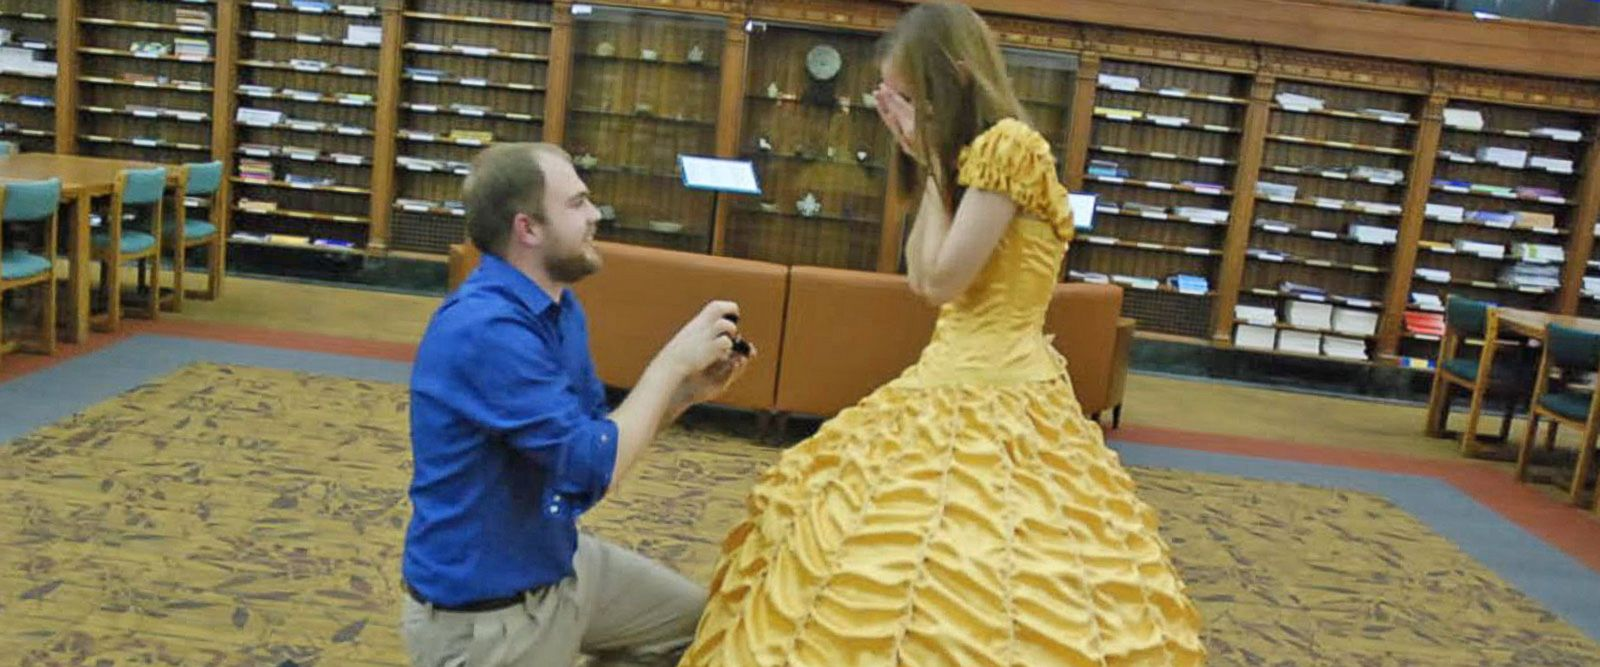 VIDEO: Boyfriend Pulls Off 'Beauty and the Beast' Proposal Complete With Belle's Yellow Gown